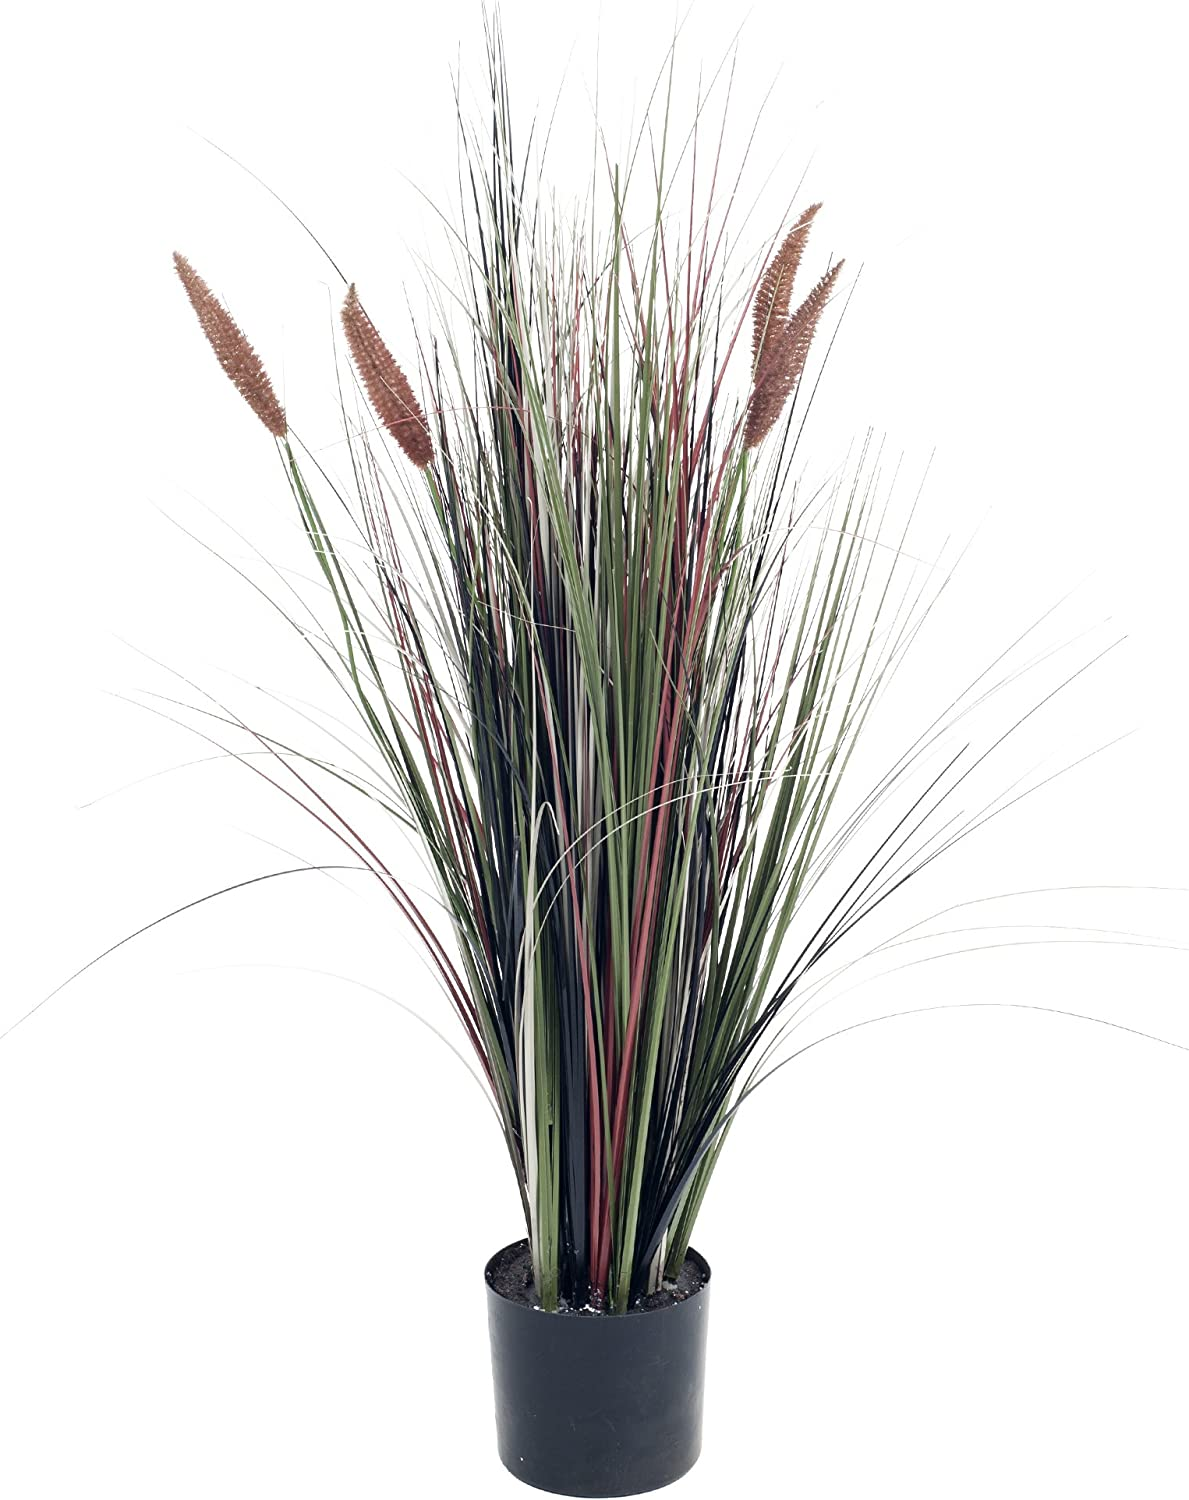 Pure Garden 50-10013 Ornamental Artificial Cattail Grass Tall 4 Sale Special Price 2021new shipping free